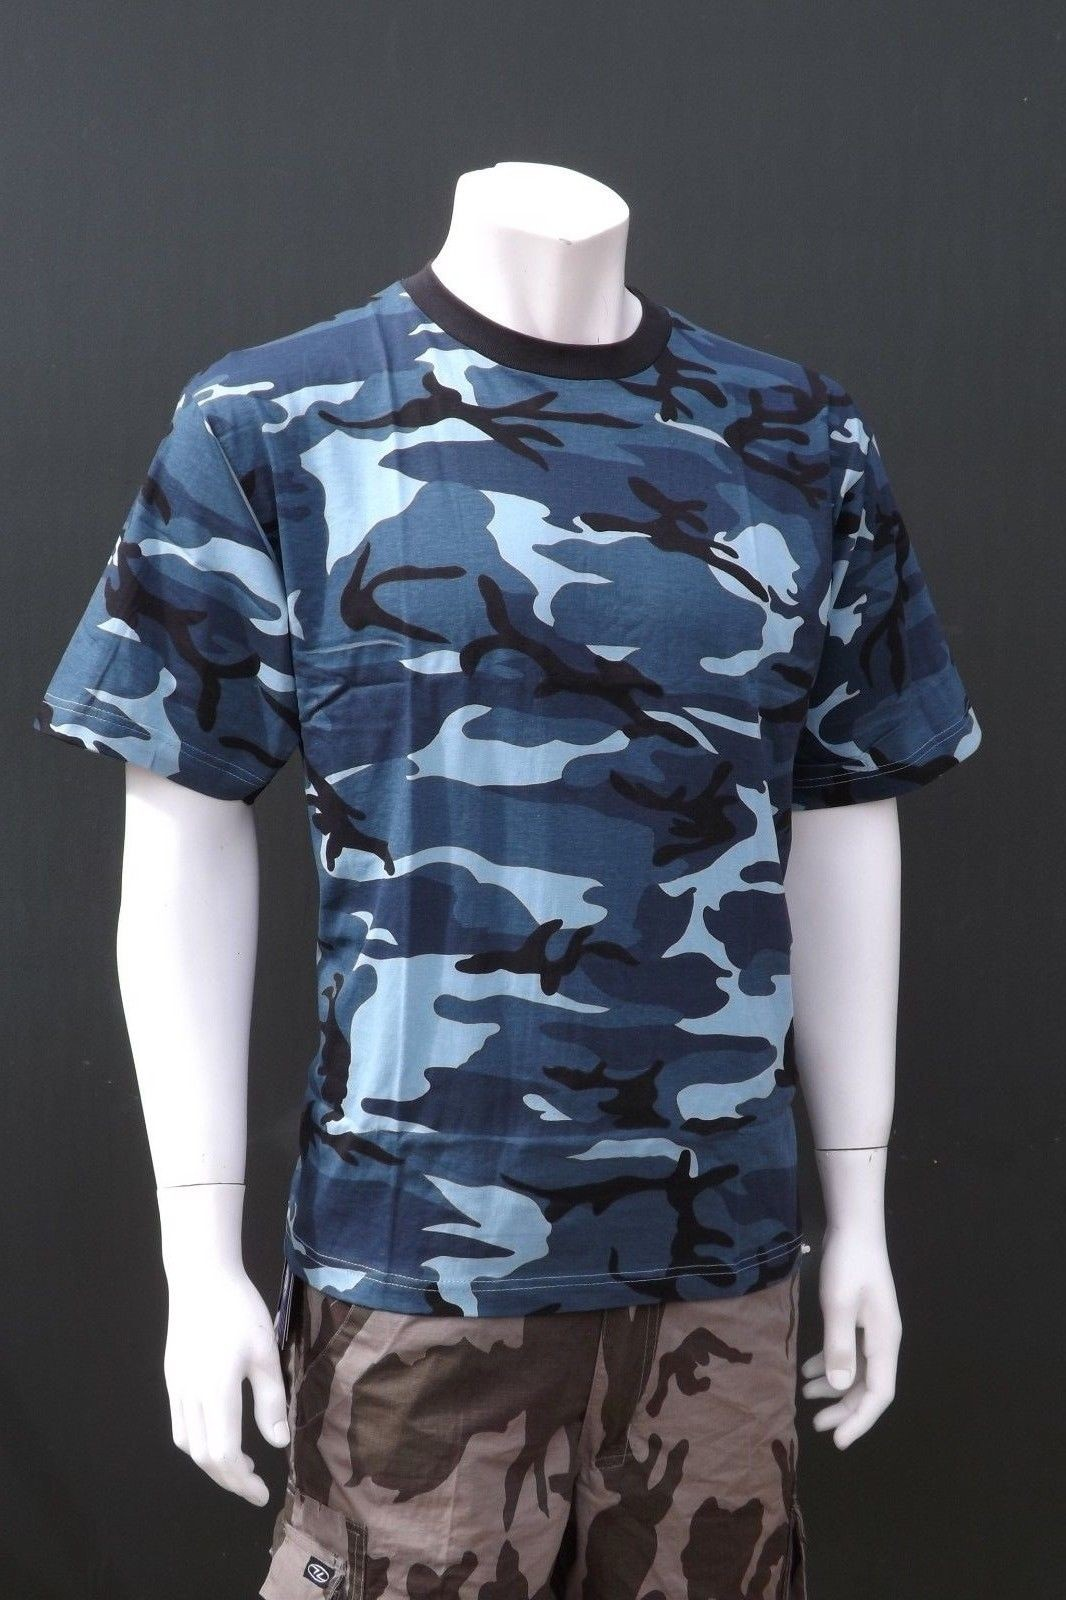 98564f2a Mil-Tec by Sturm Midnight Blue Camouflage T-Shirt 100% Cotton Mens Short  Sleeve